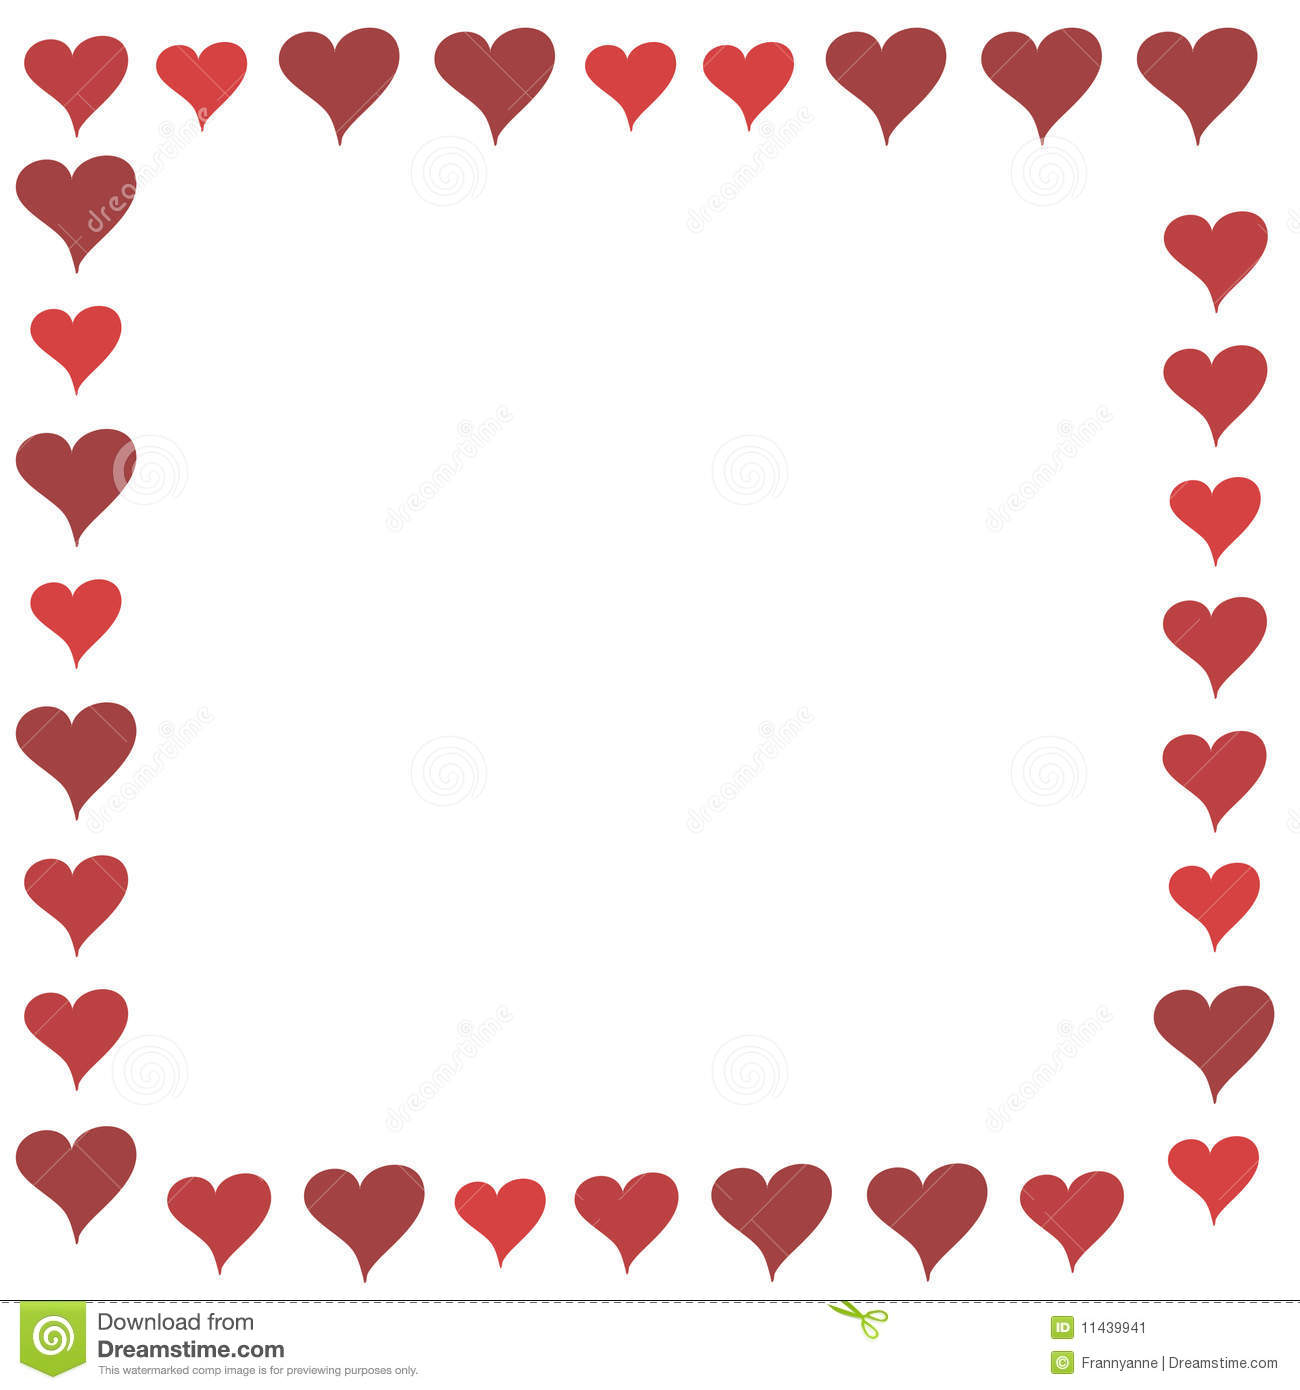 Illustrated full-frame border of cartoonish red hearts in multiple ...